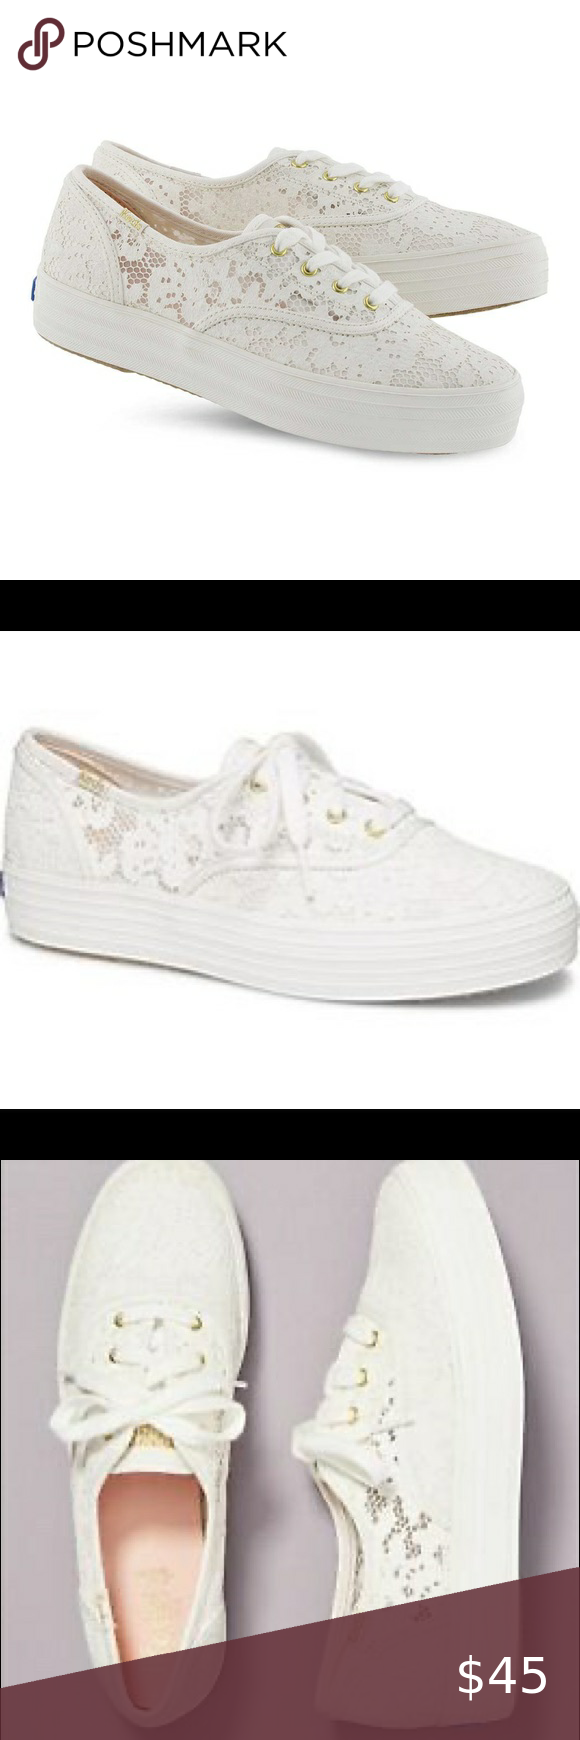 NWT Anthro Keds Triple Painted Crochet